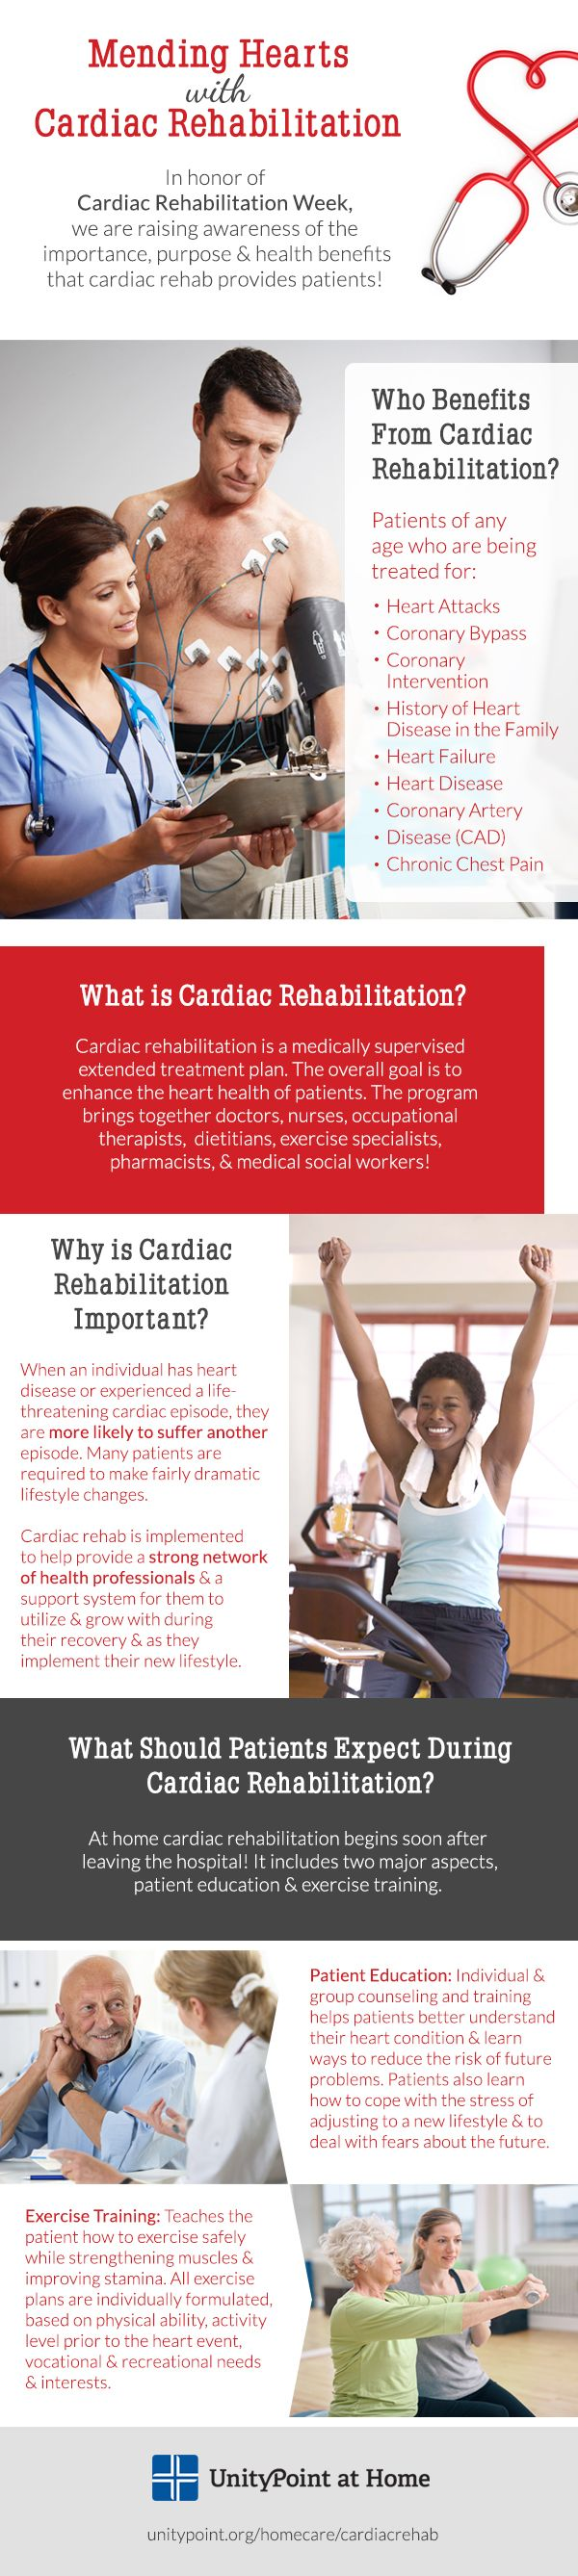 UnityPoint at Home helps patients rebuild their lives and increase quality of living with cardiac rehabilitation!